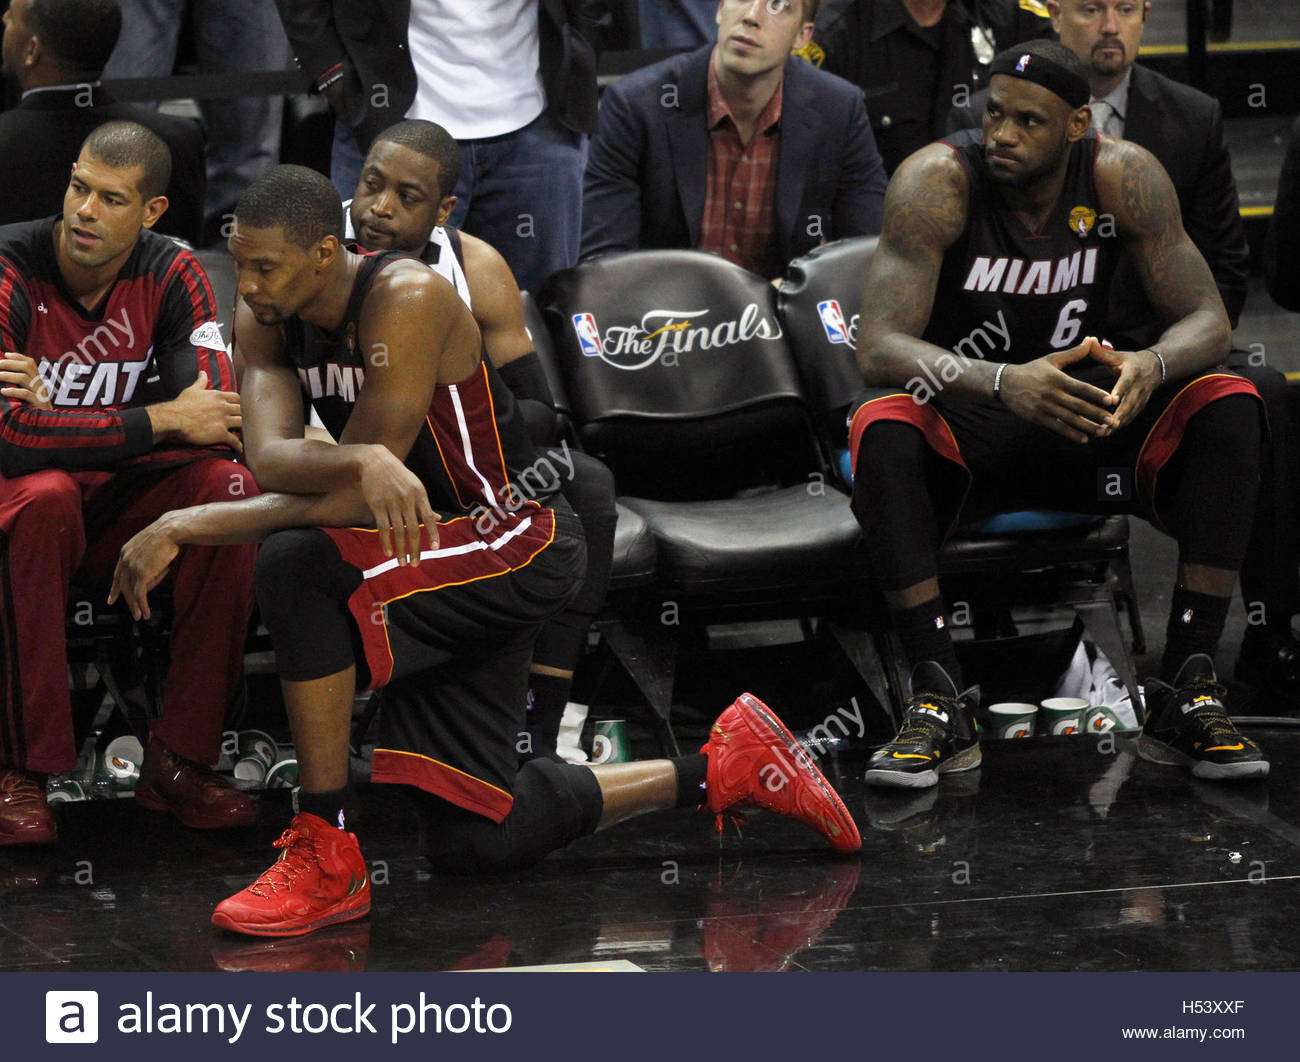 Mi miami heat team with lebron - Miami Heat Players L R Shane Battier Chris Bosh Dwyane Wade And Lebron